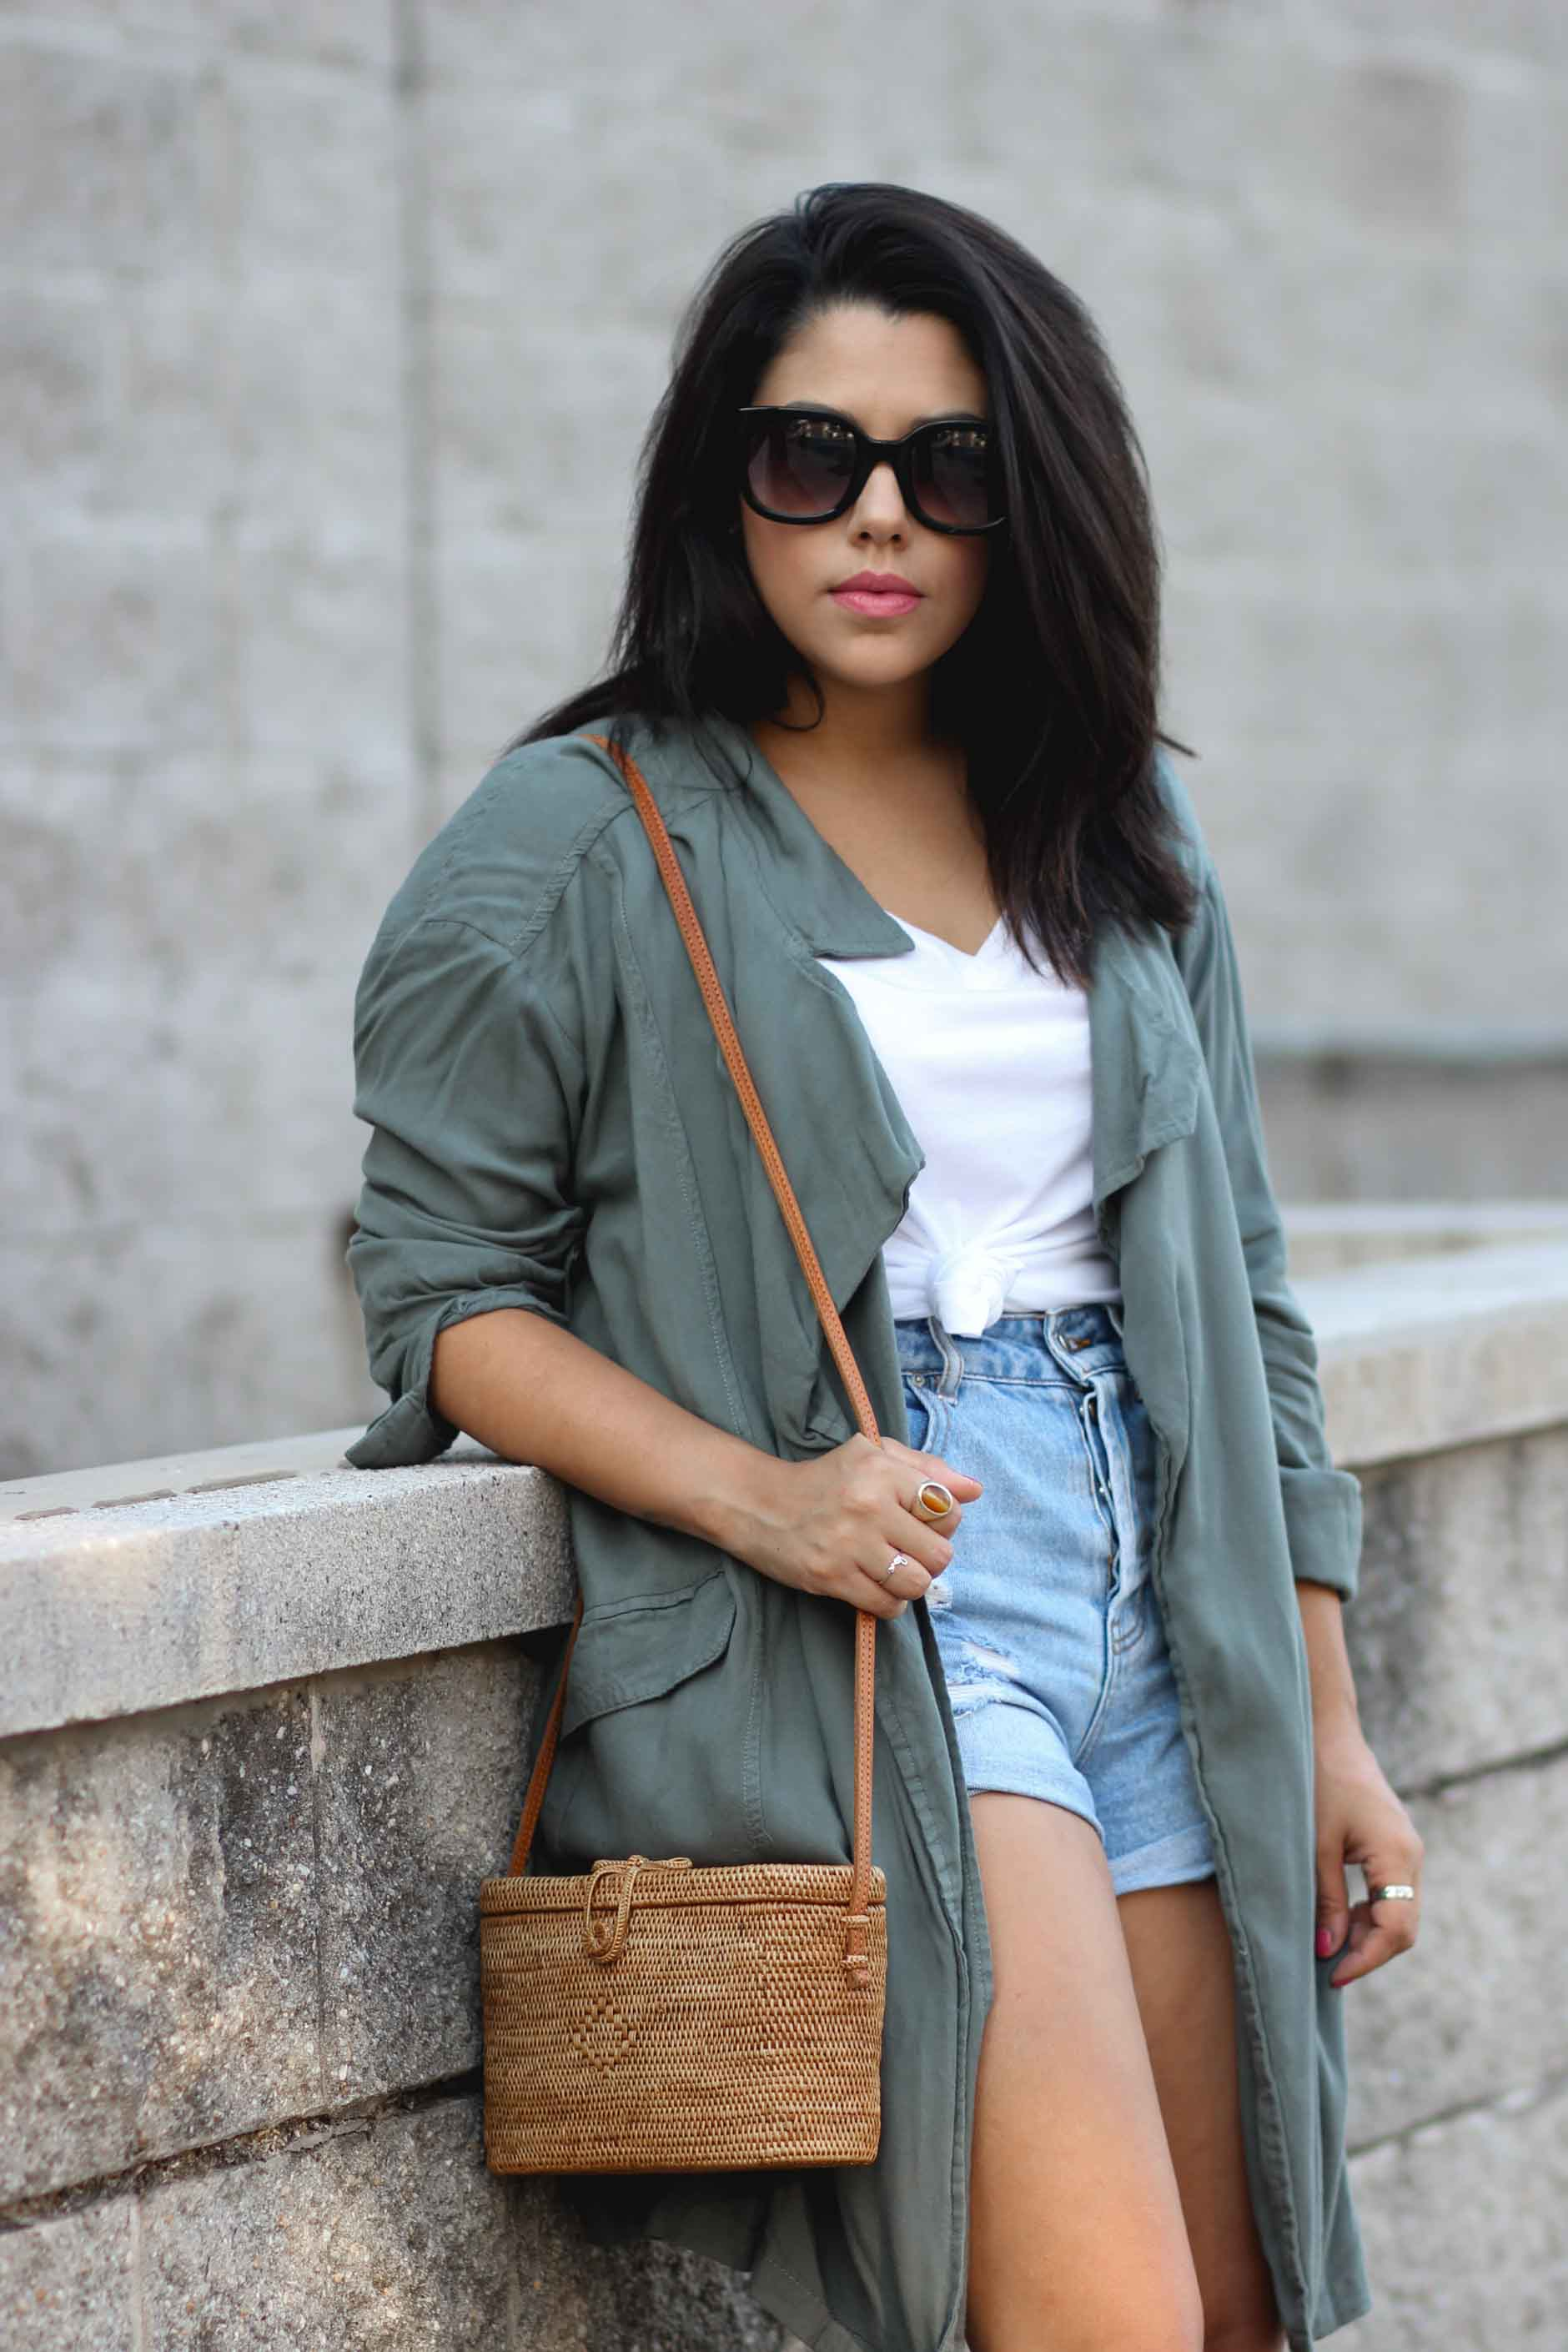 lifestyle blogger naty michele wearing a draped trench coat with a knotted tee and denim shorts